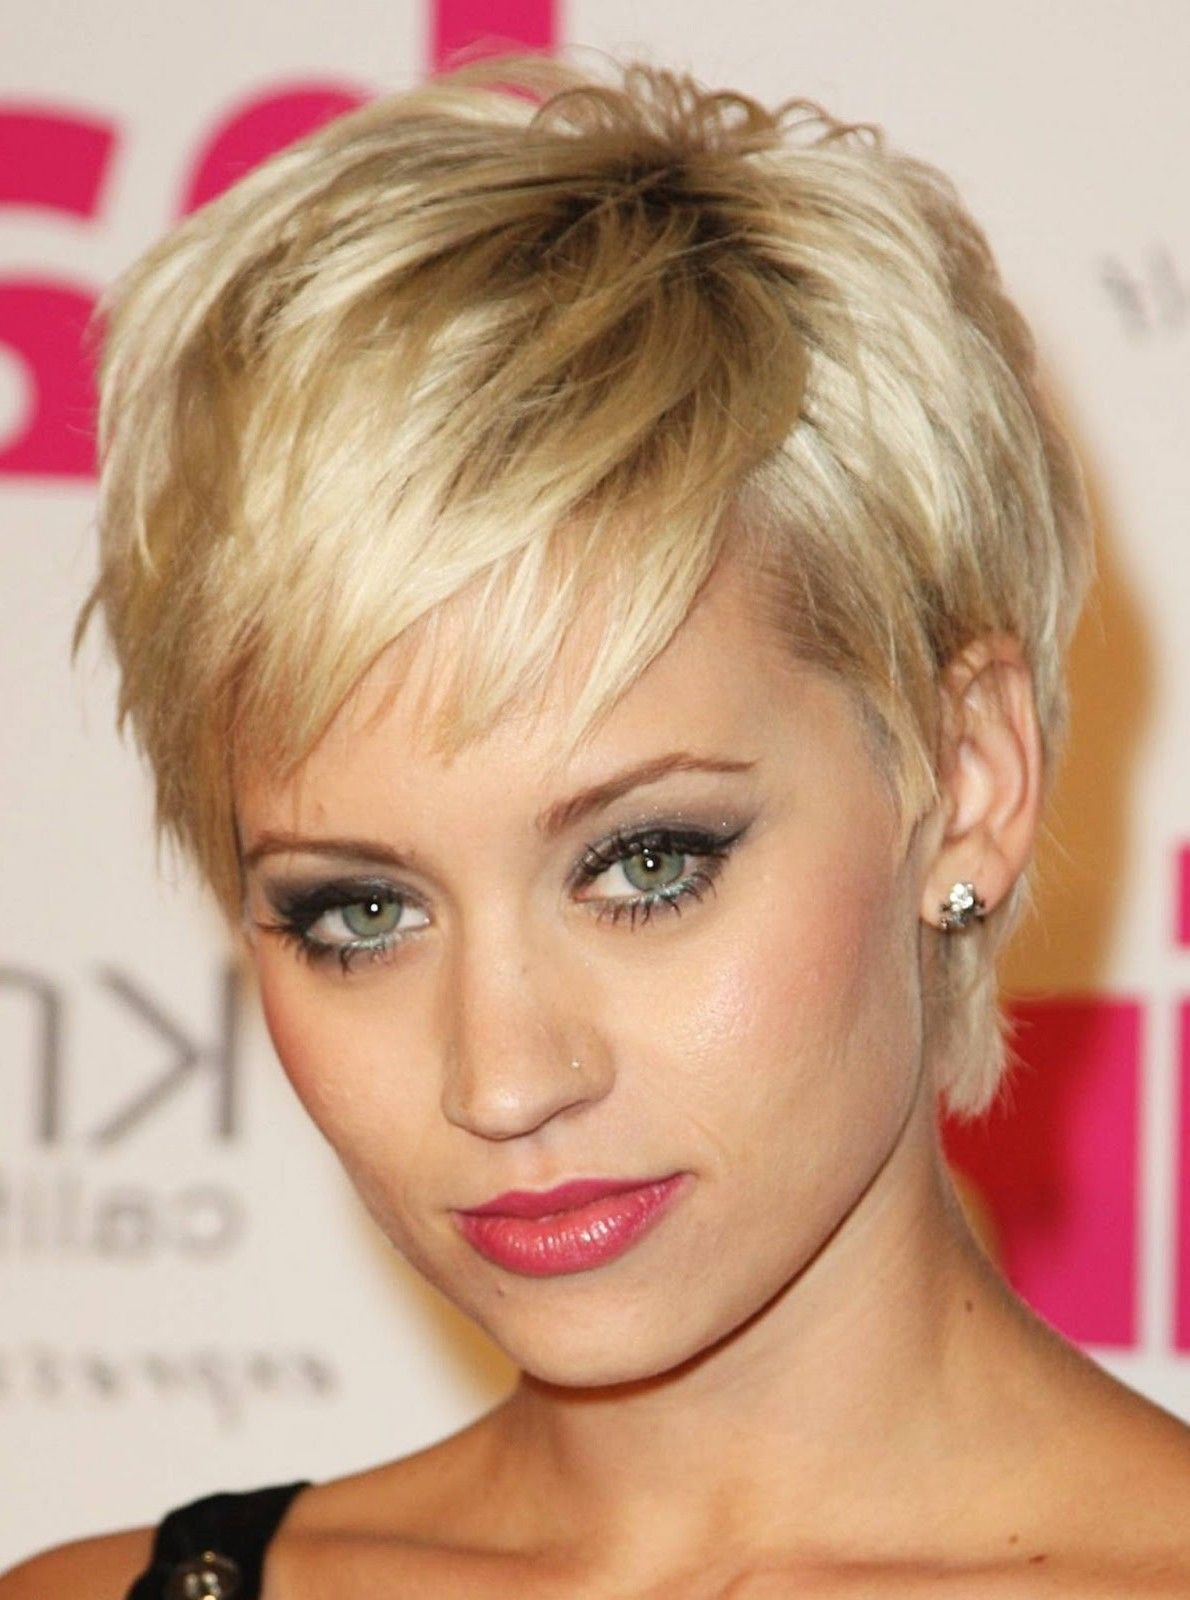 2015 back short hairstyles | 12 photos of the short hairstyles for